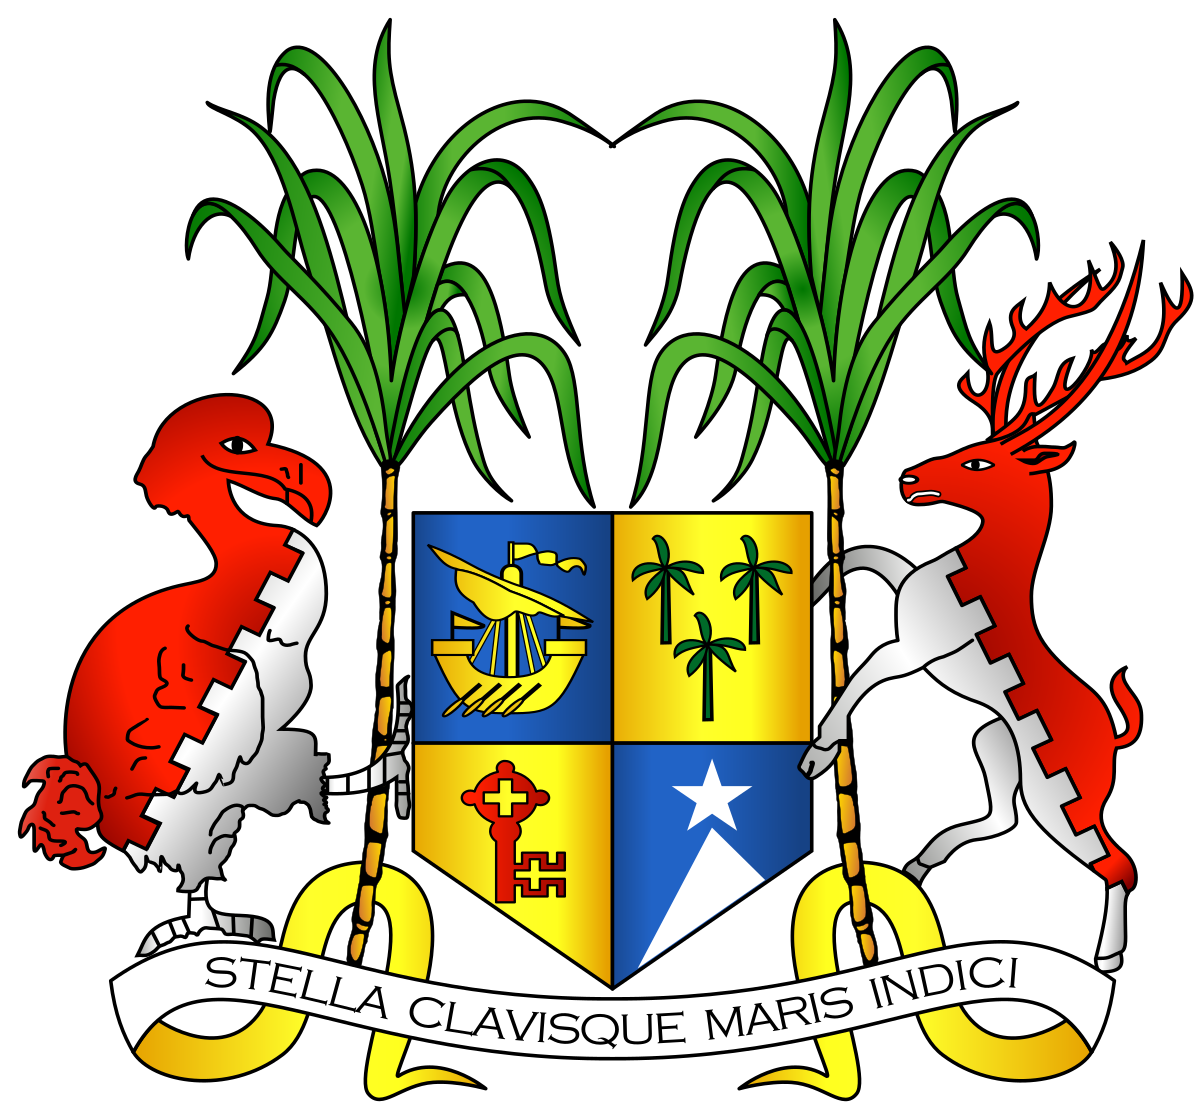 Voting clipart republic government. Education in mauritius wikipedia